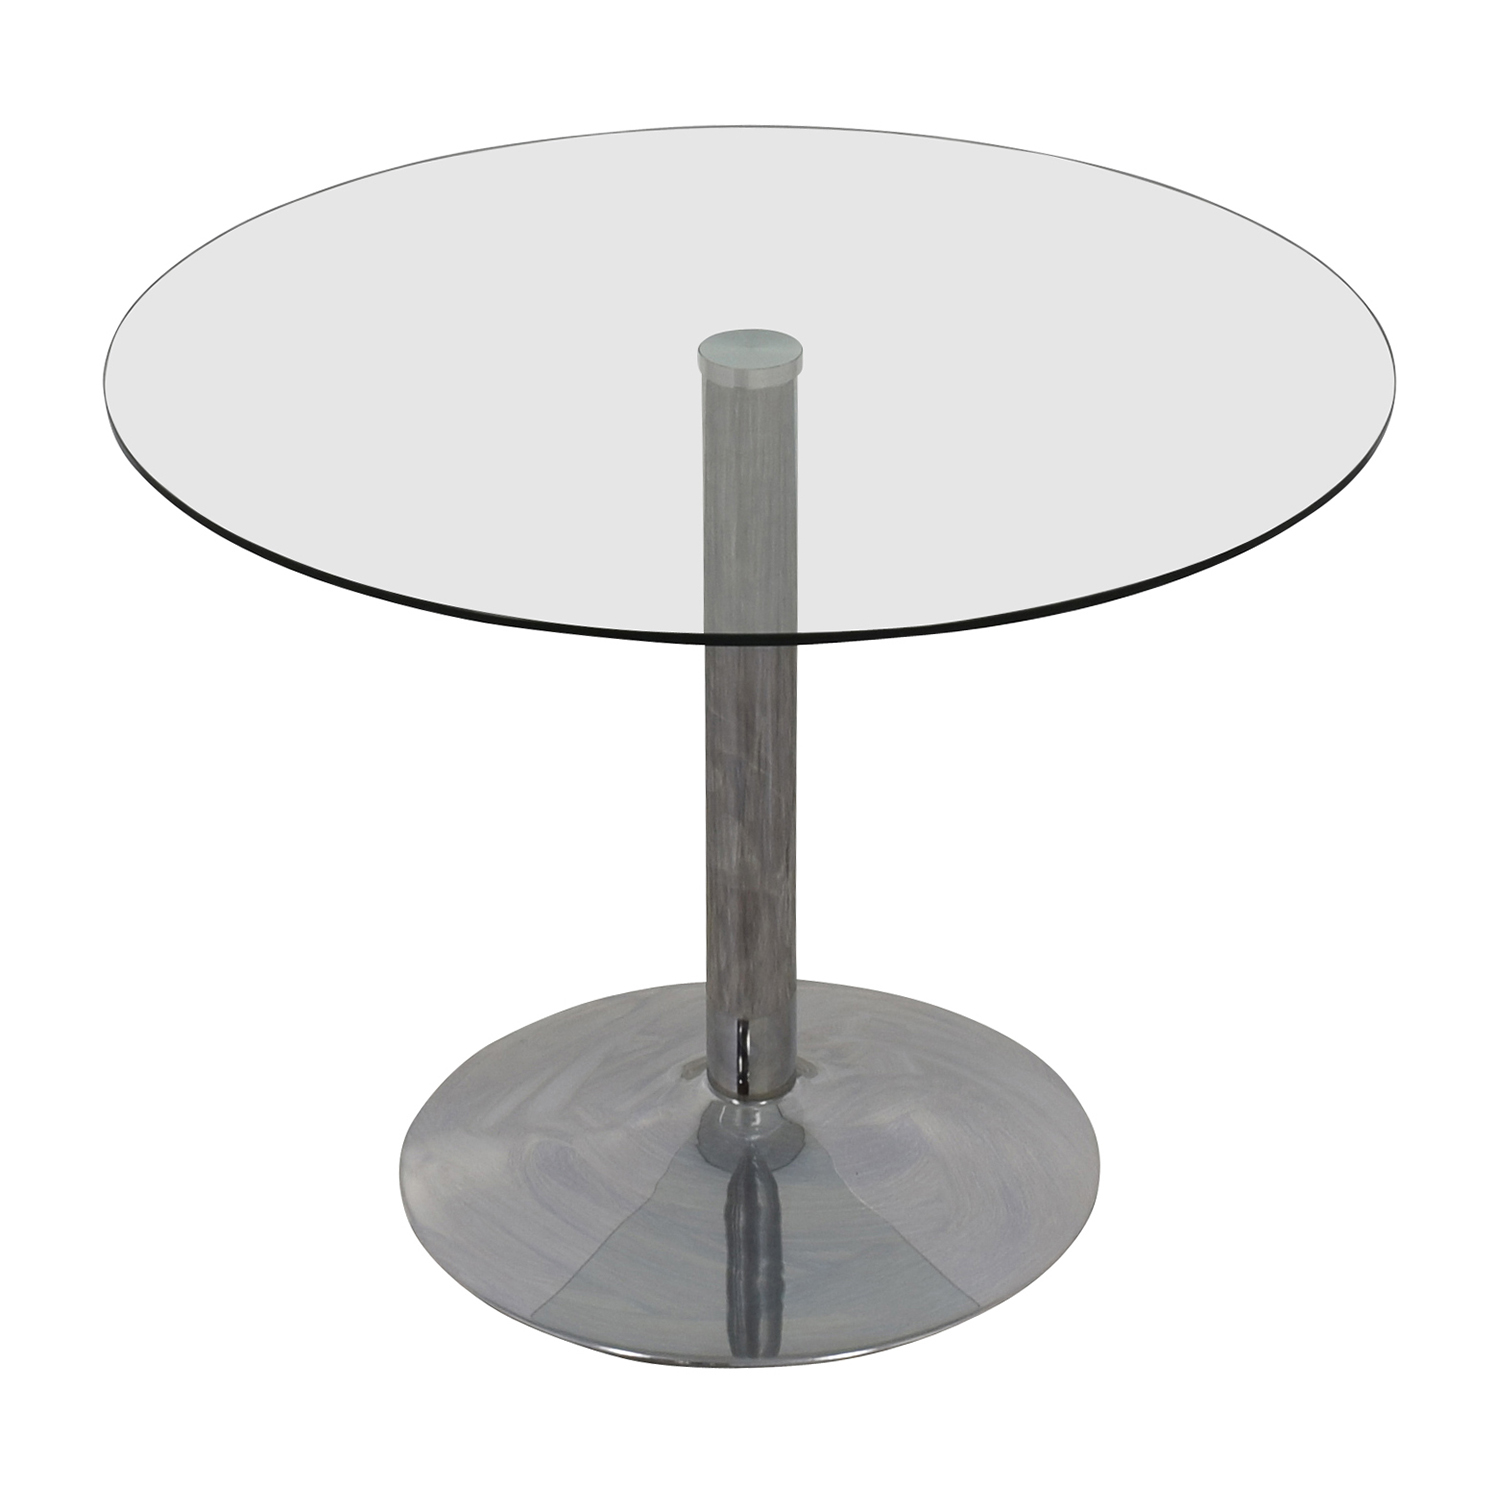 shop Dot & Bo Lucent Round Cafe Table Dot & Bo